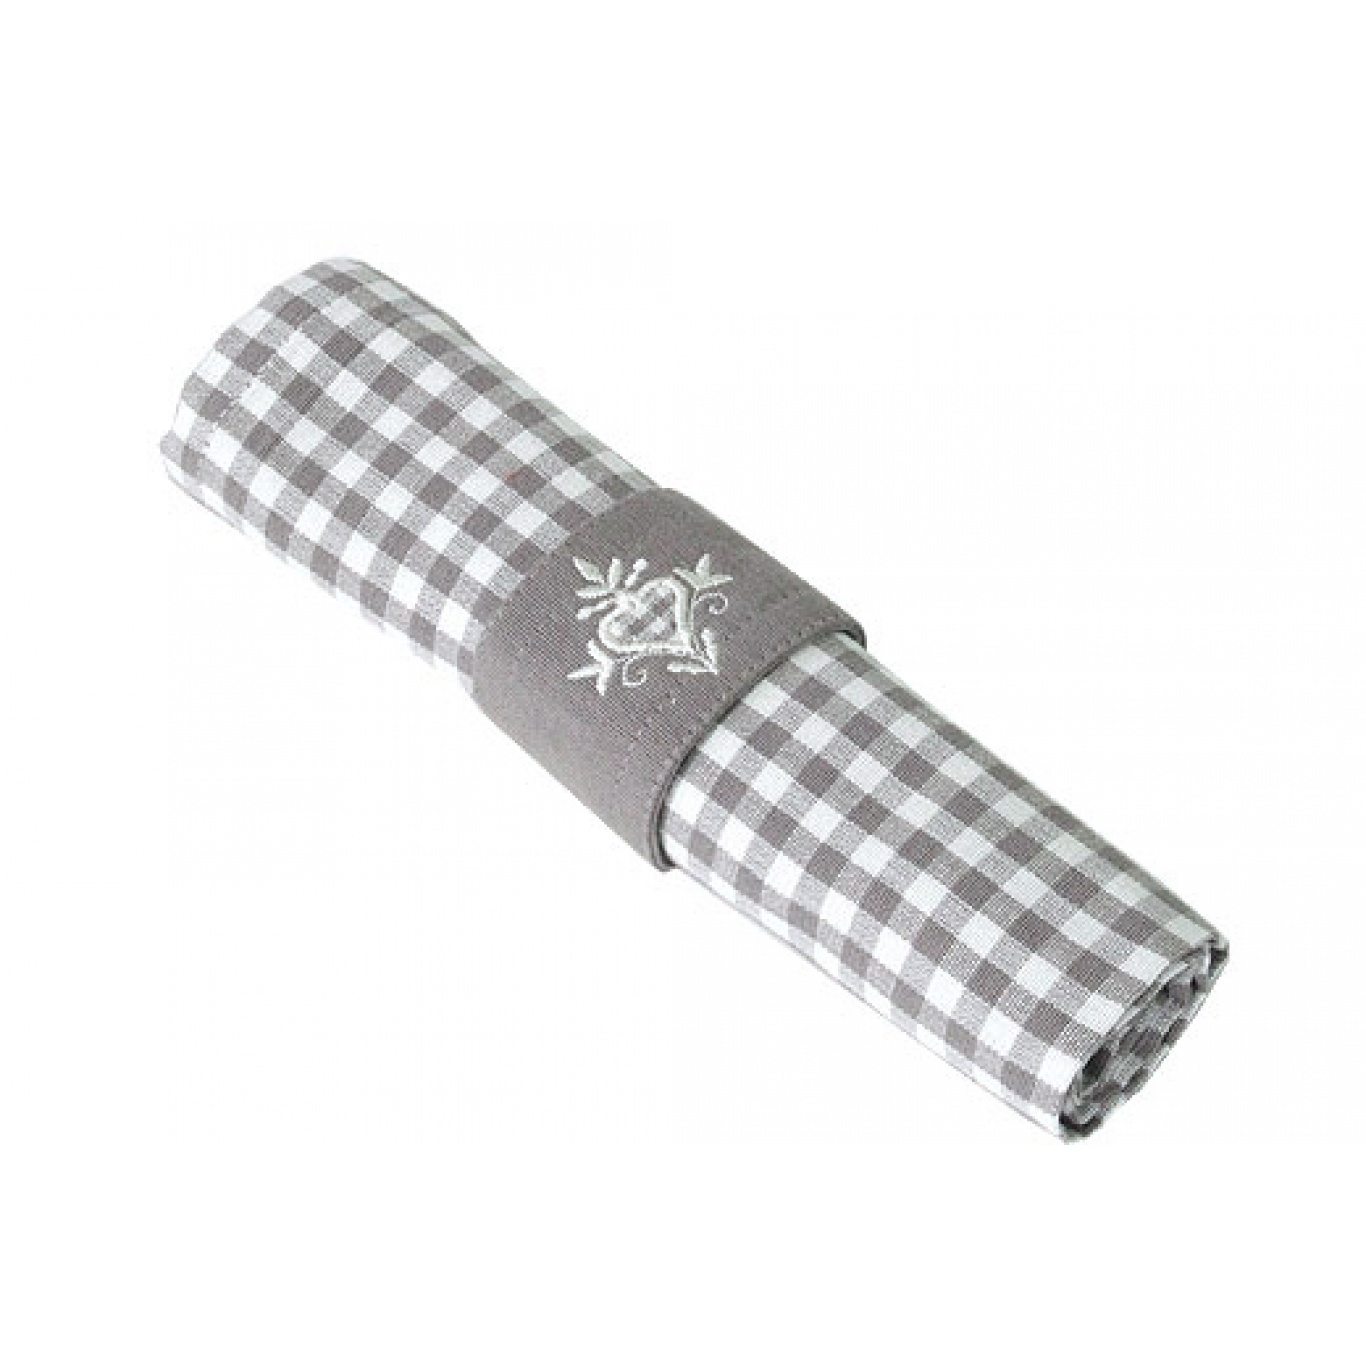 Image of Auberge Cobble Check Napkins set of 4